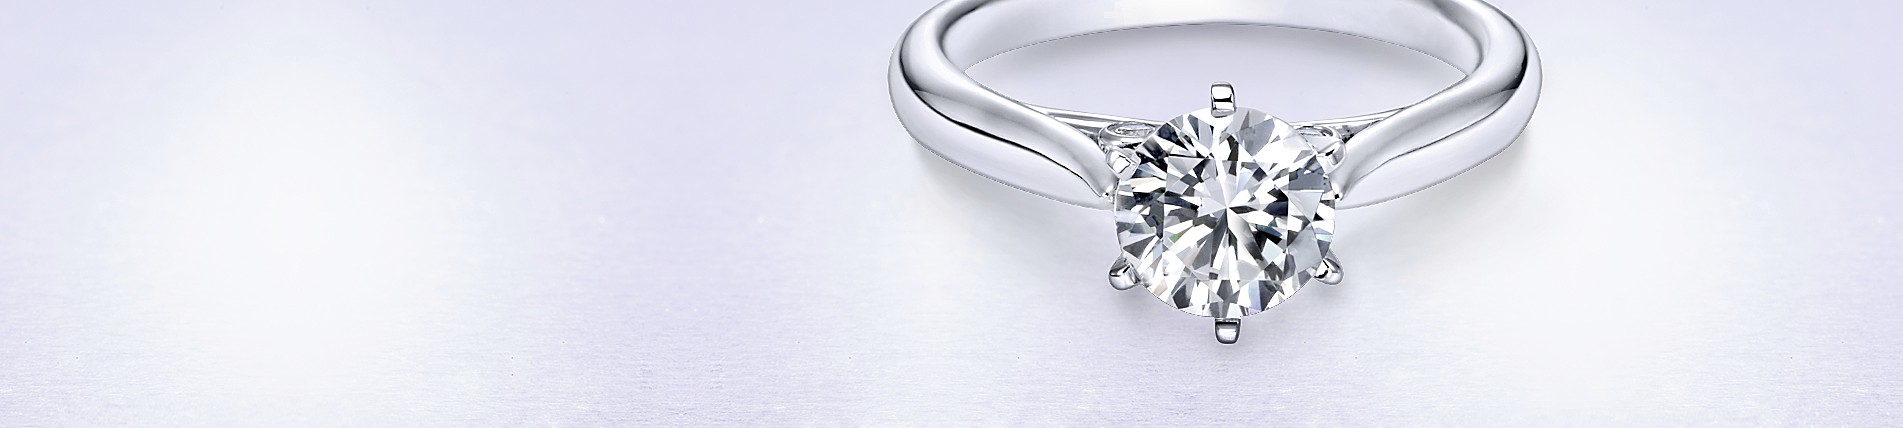 cut vidar carat diamonds flower engagement unique jewelry diamond princess ring platinum jewellery shop bands